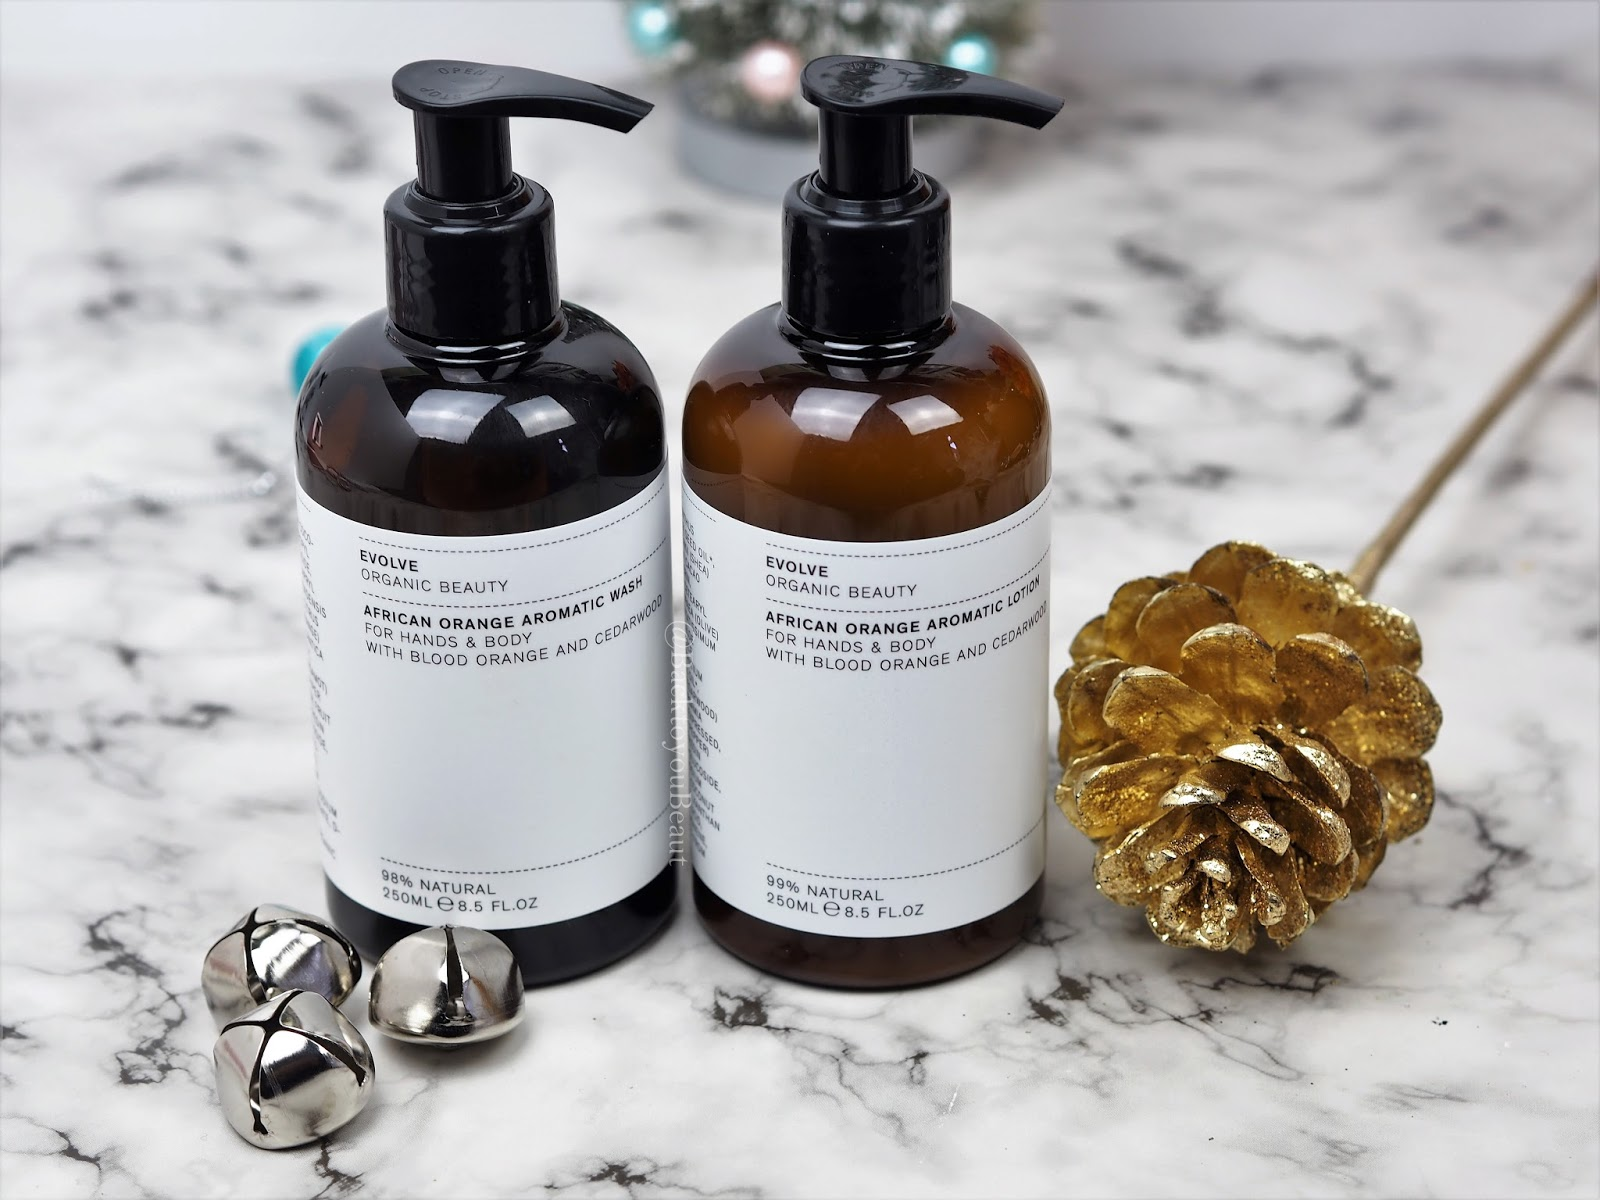 Evolve Organic Beauty African Orange Aromatic Hand & Body Wash and Hand & Body Lotion